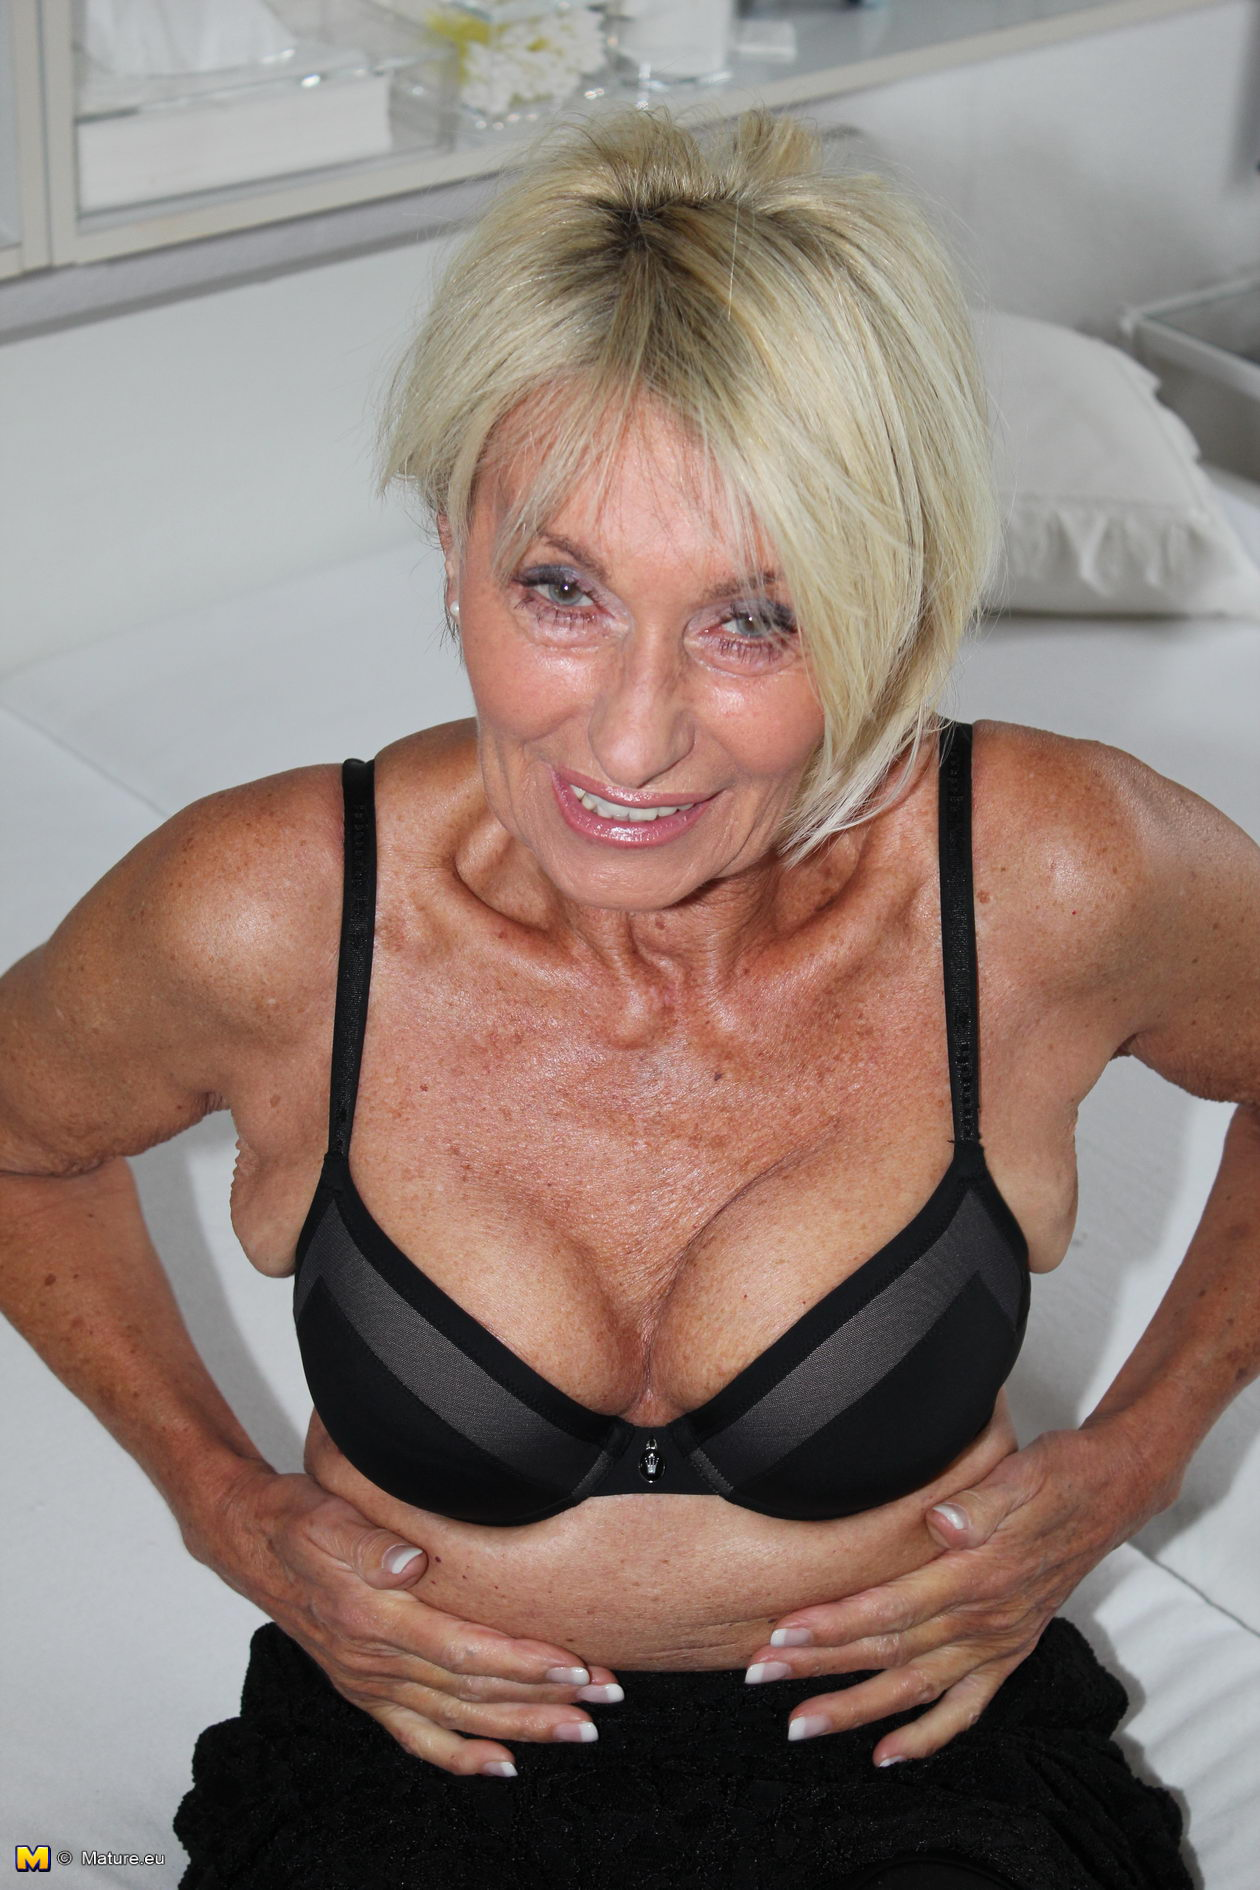 Fake taxi old woman and old women 6